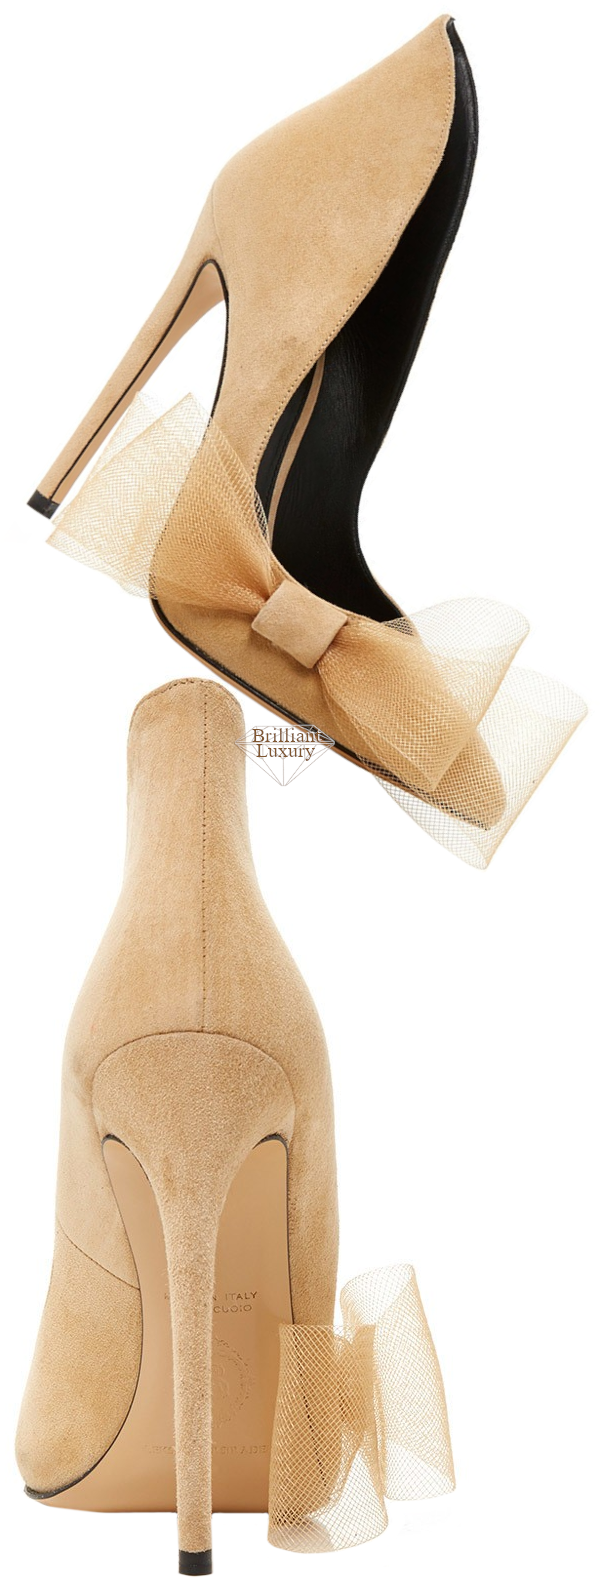 Aleksander Siradekian beige Roza bow pump #brilliantluxury